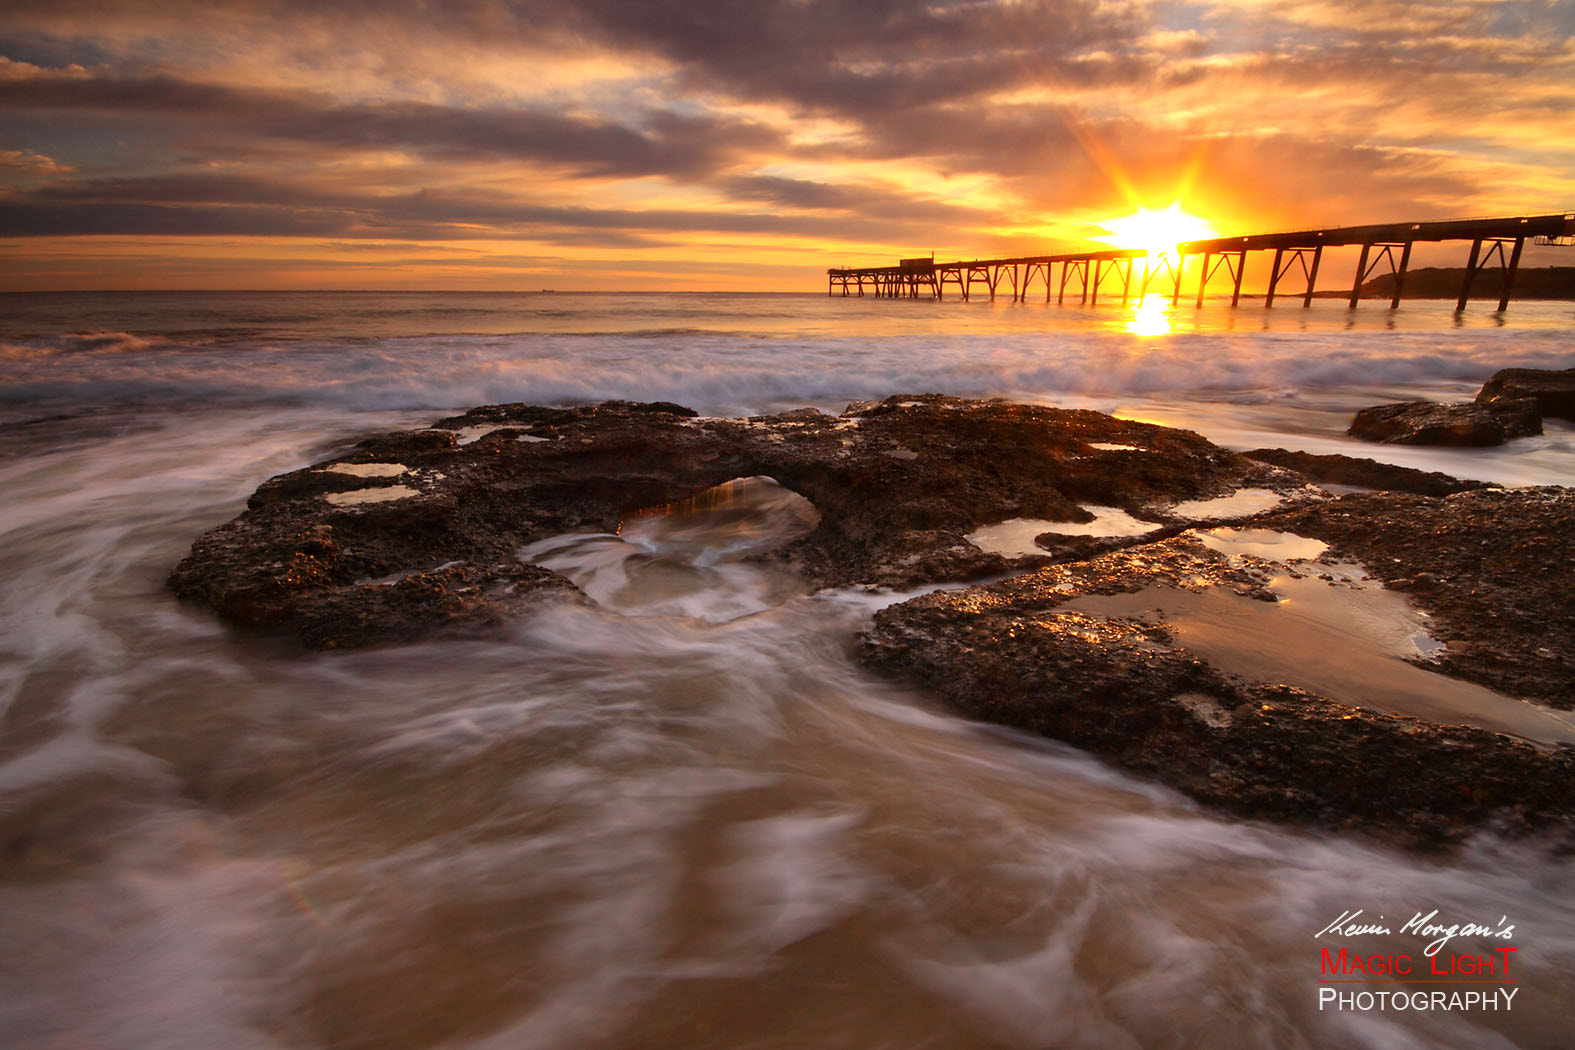 Photograph Catherine Hill Bay sunrise by Kevin Morgan on 500px